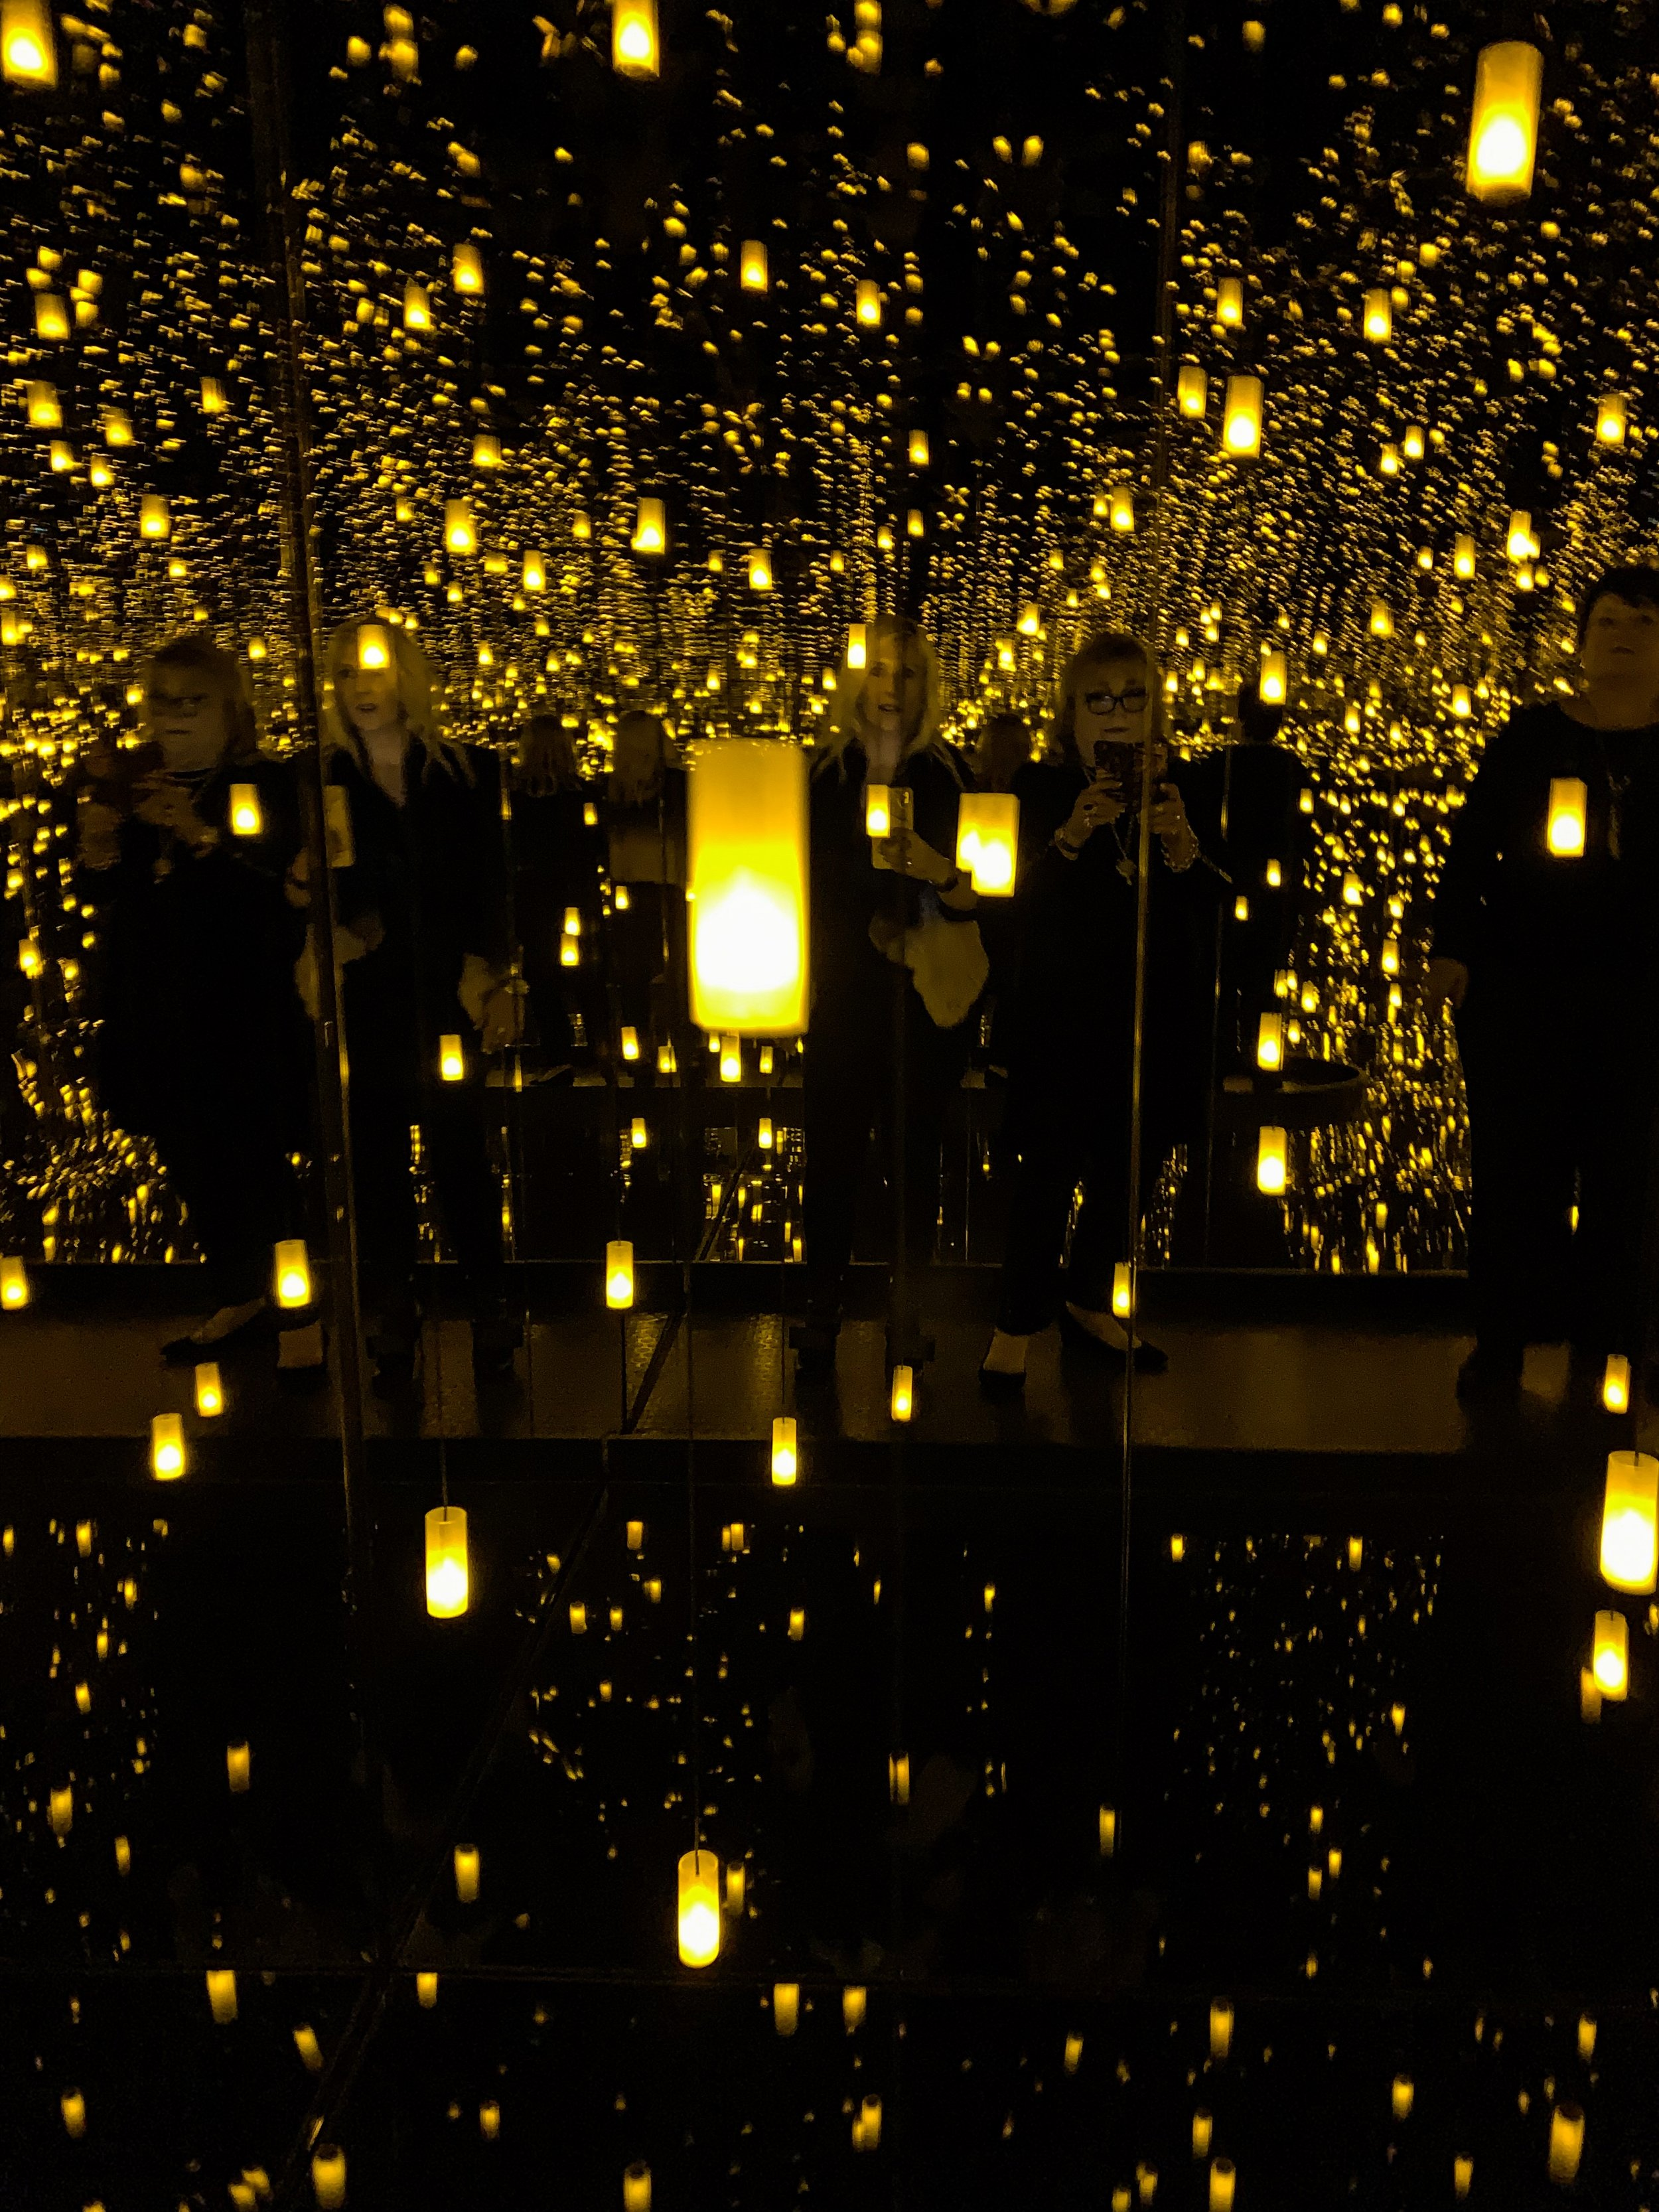 Infinity Mirrored Room - Aftermath Of Obliteration Of Eternity